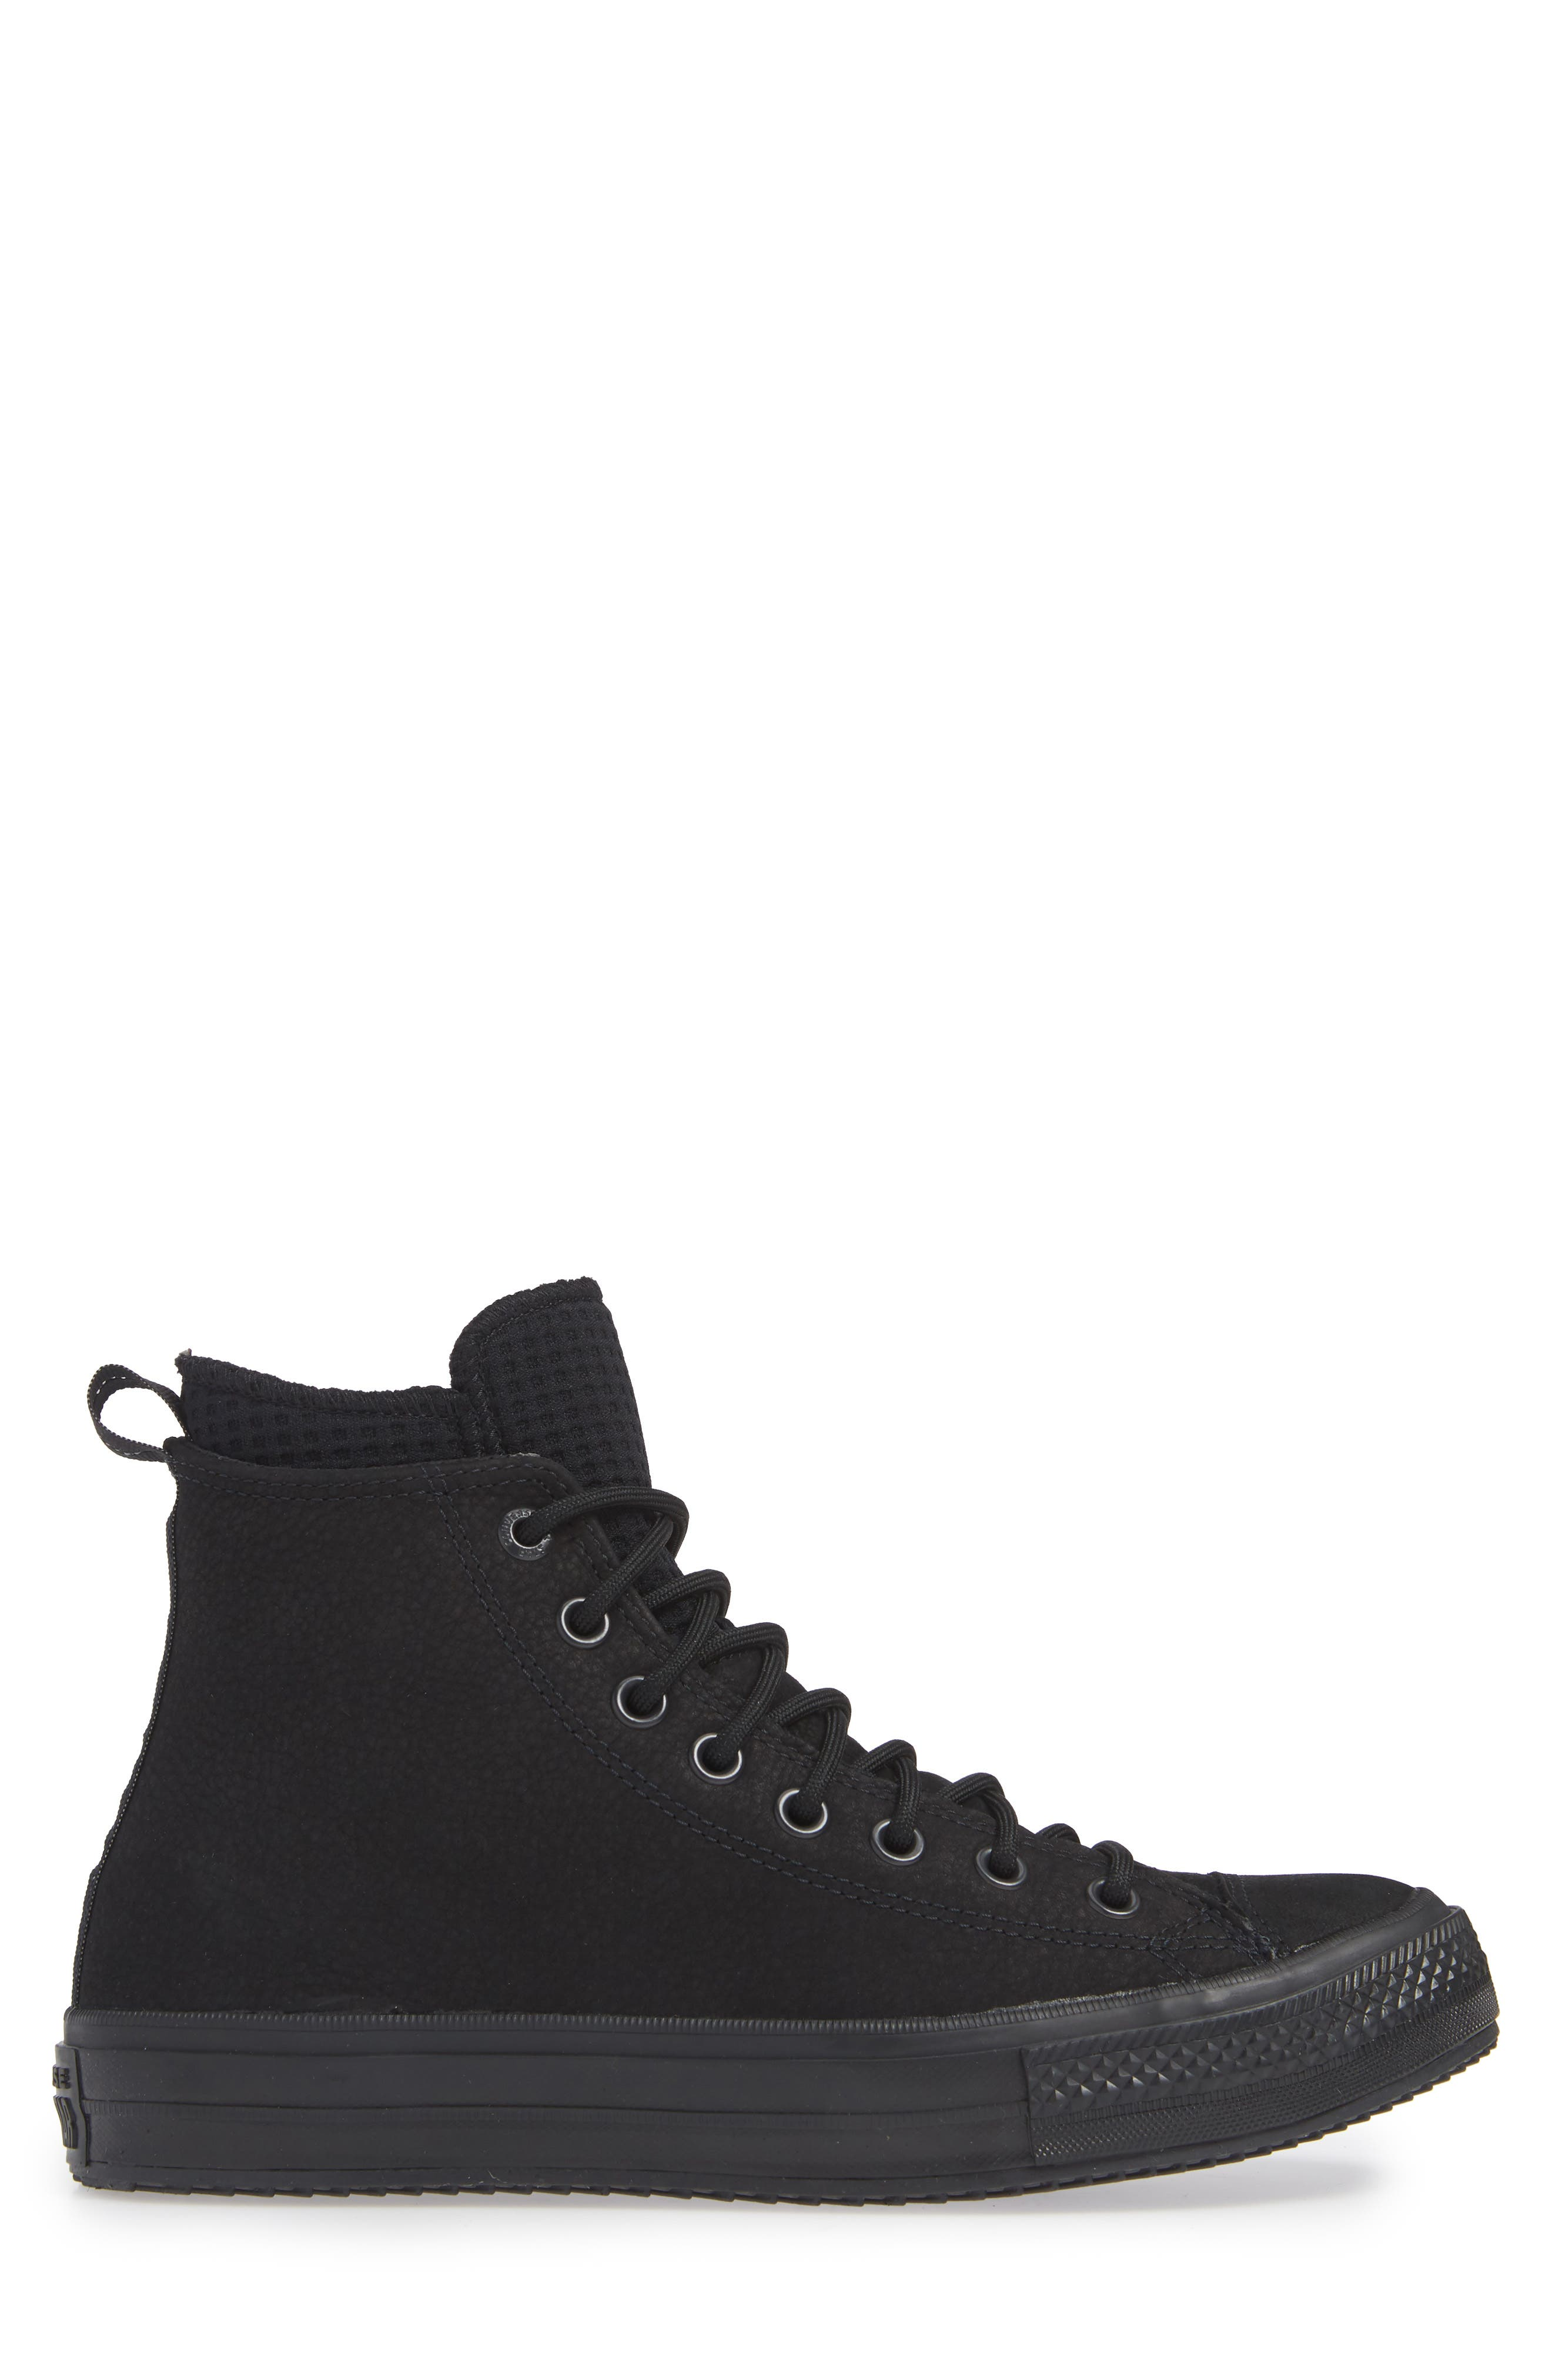 Chuck Taylor<sup>®</sup> All Star<sup>®</sup> Counter Climate Waterproof Sneaker,                         Main,                         color, 001